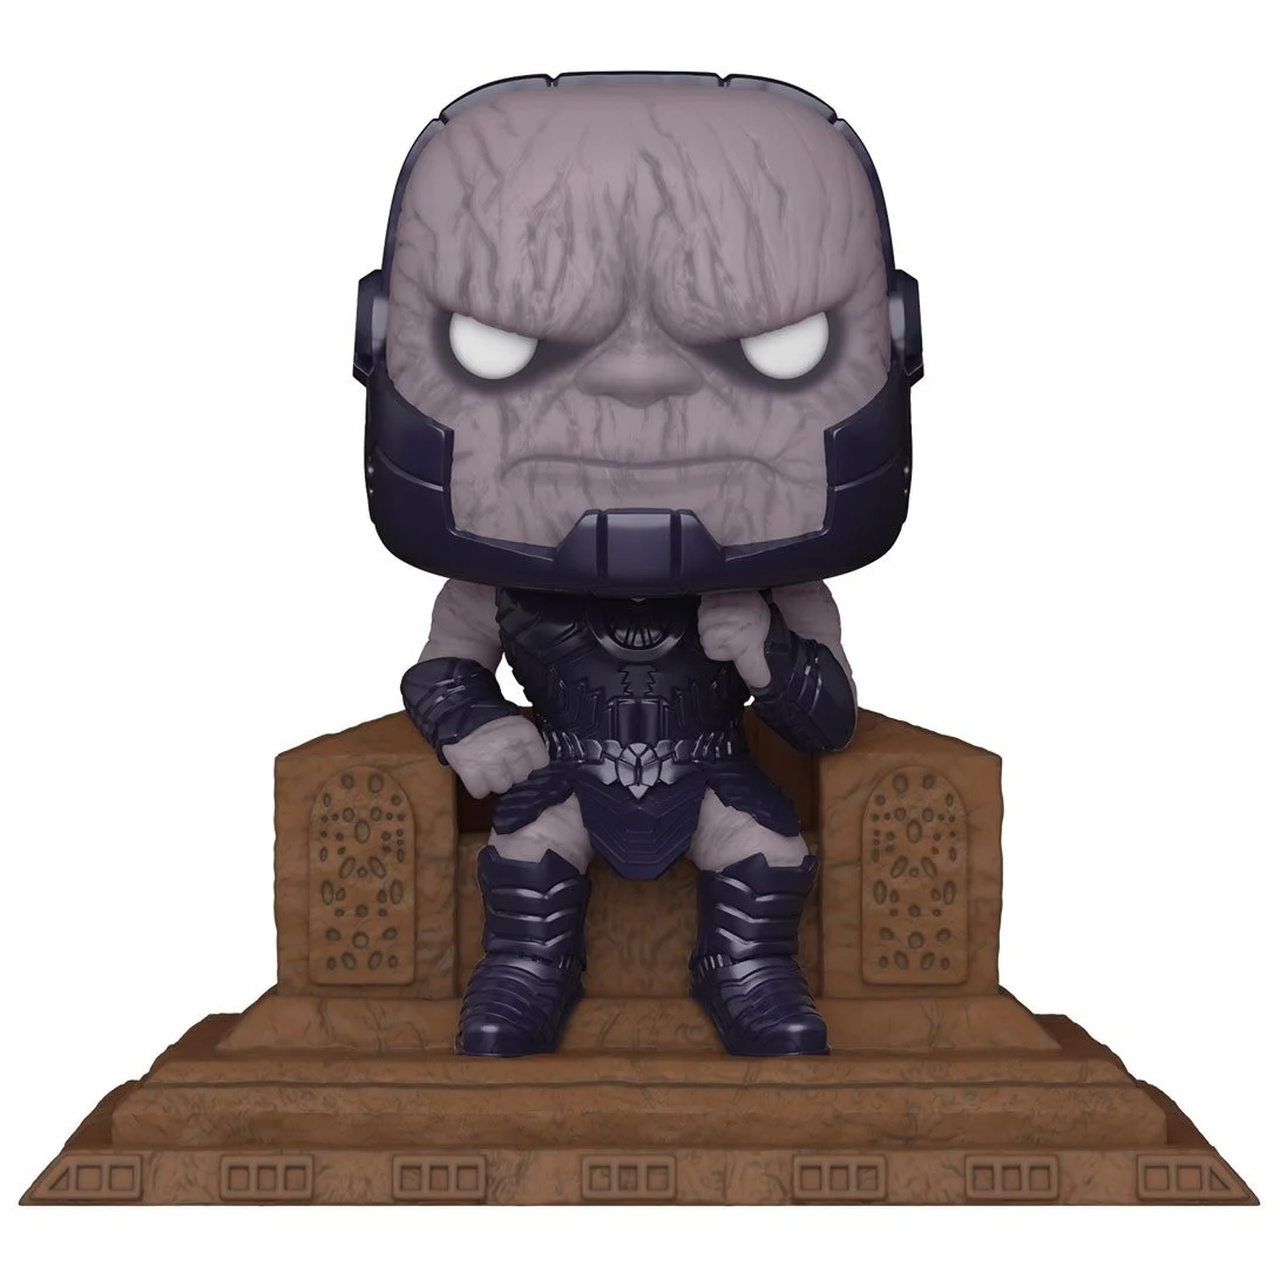 PRÉ VENDA: Funko Pop! Darkseid no Trono Darkseid on Throne Deluxe: Justice League Snyder Cut - Dc Comics - Funko